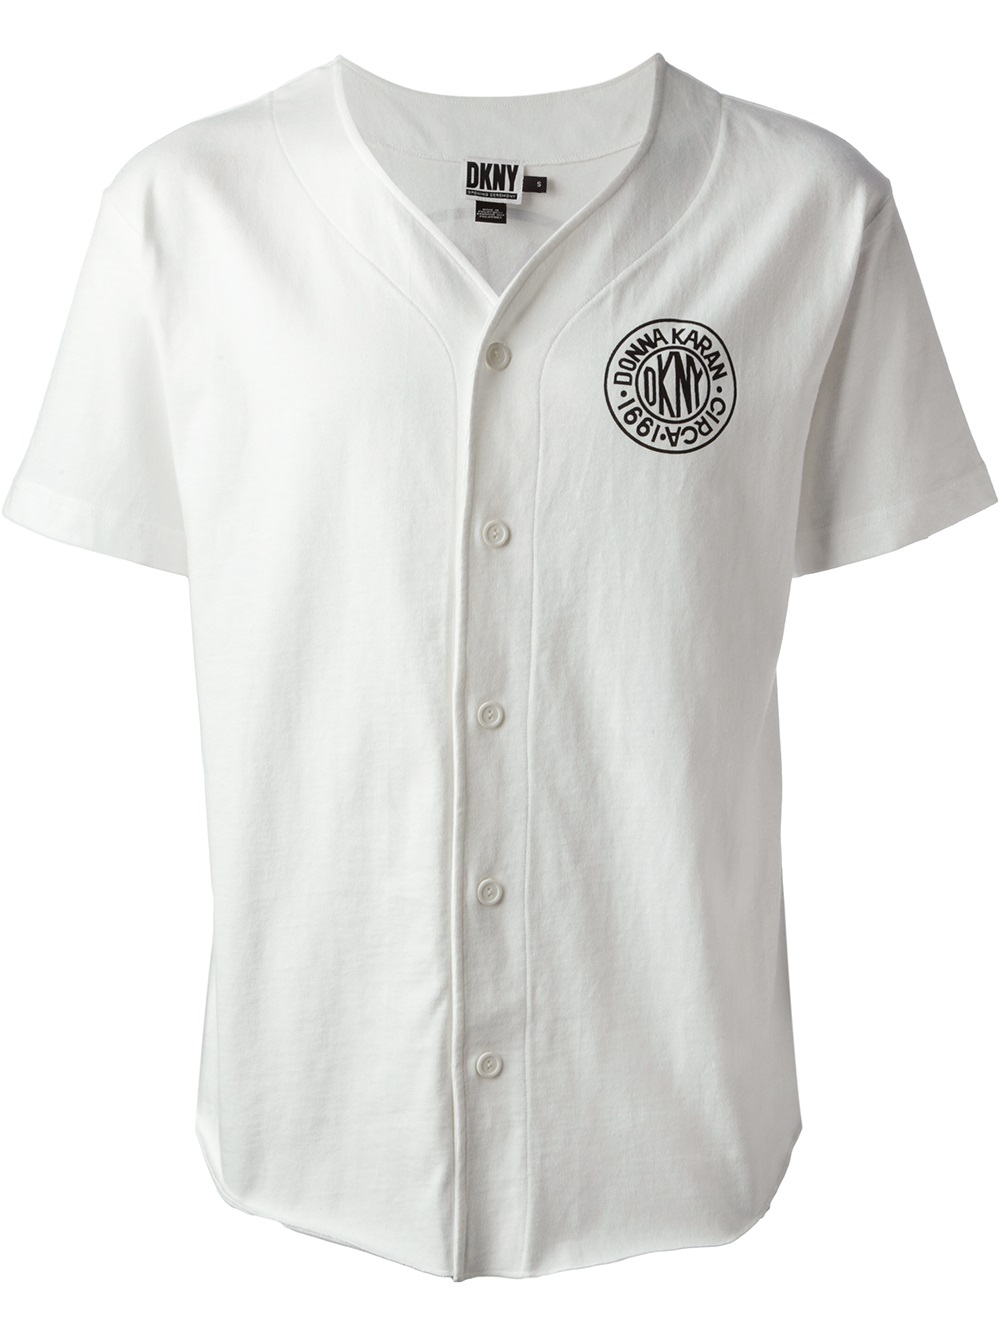 Lyst Dkny Baseball Tshirt In White For Men